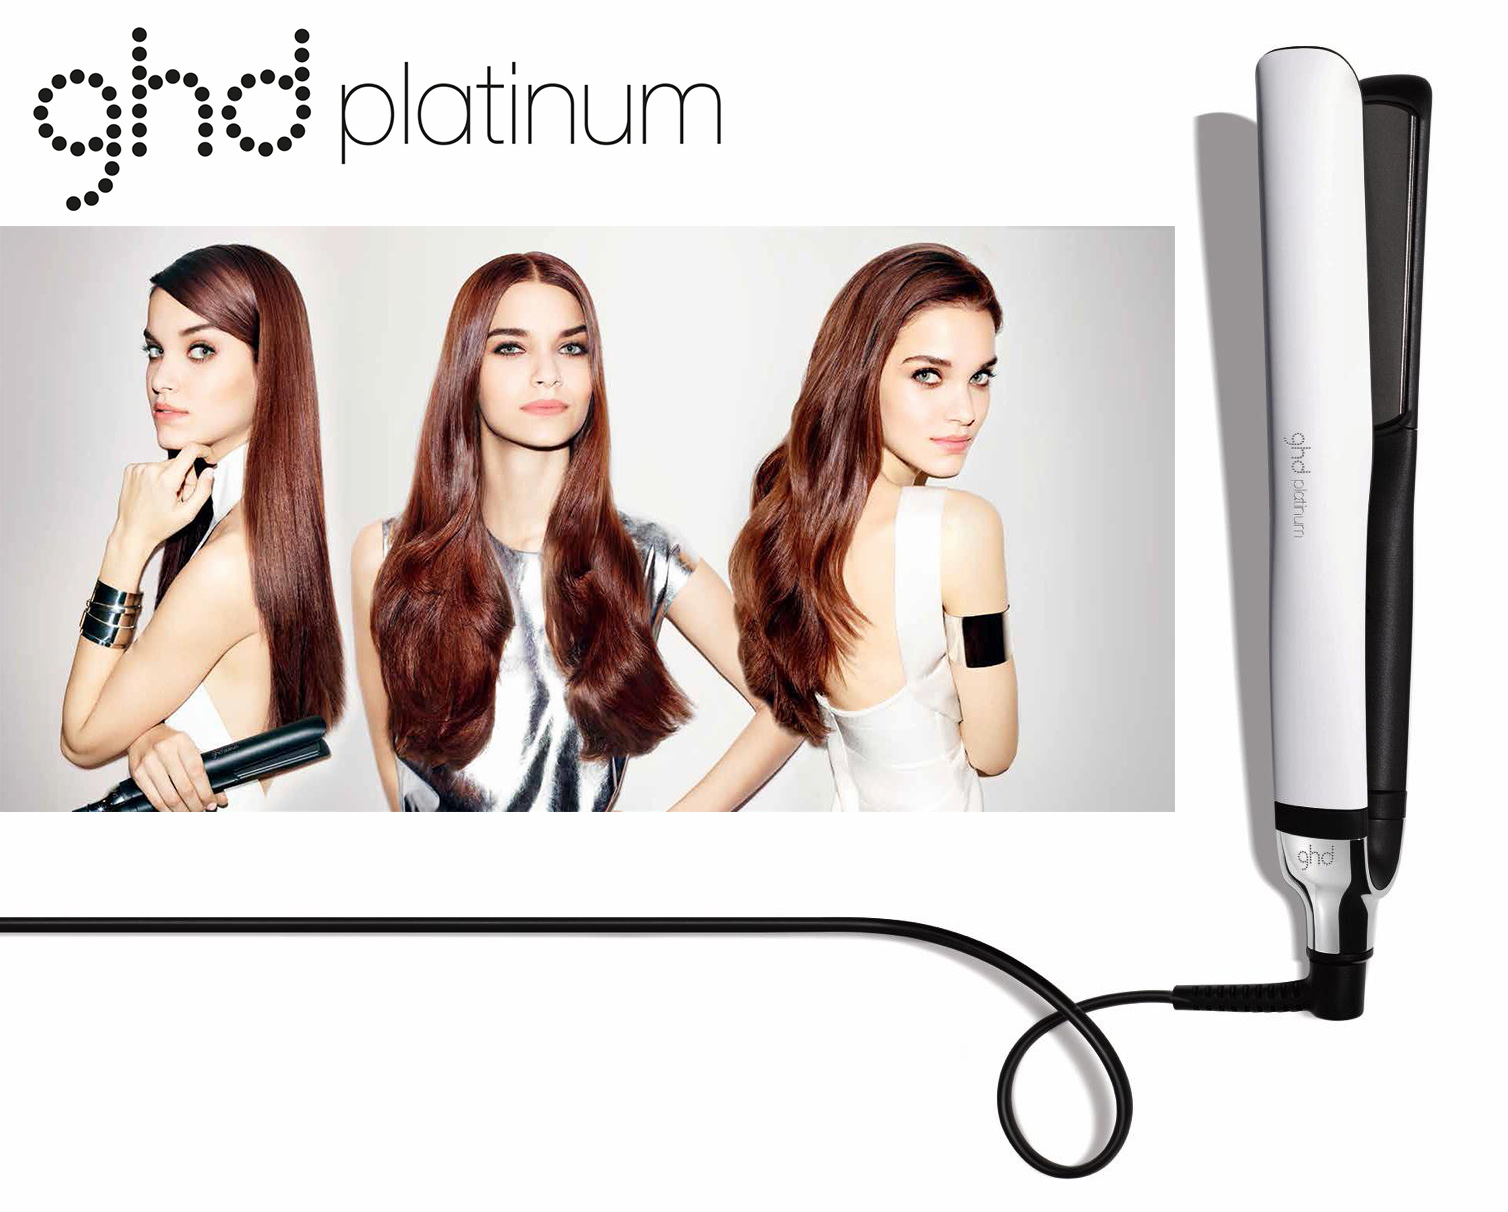 ghd_platinum_middle_logo.jpg